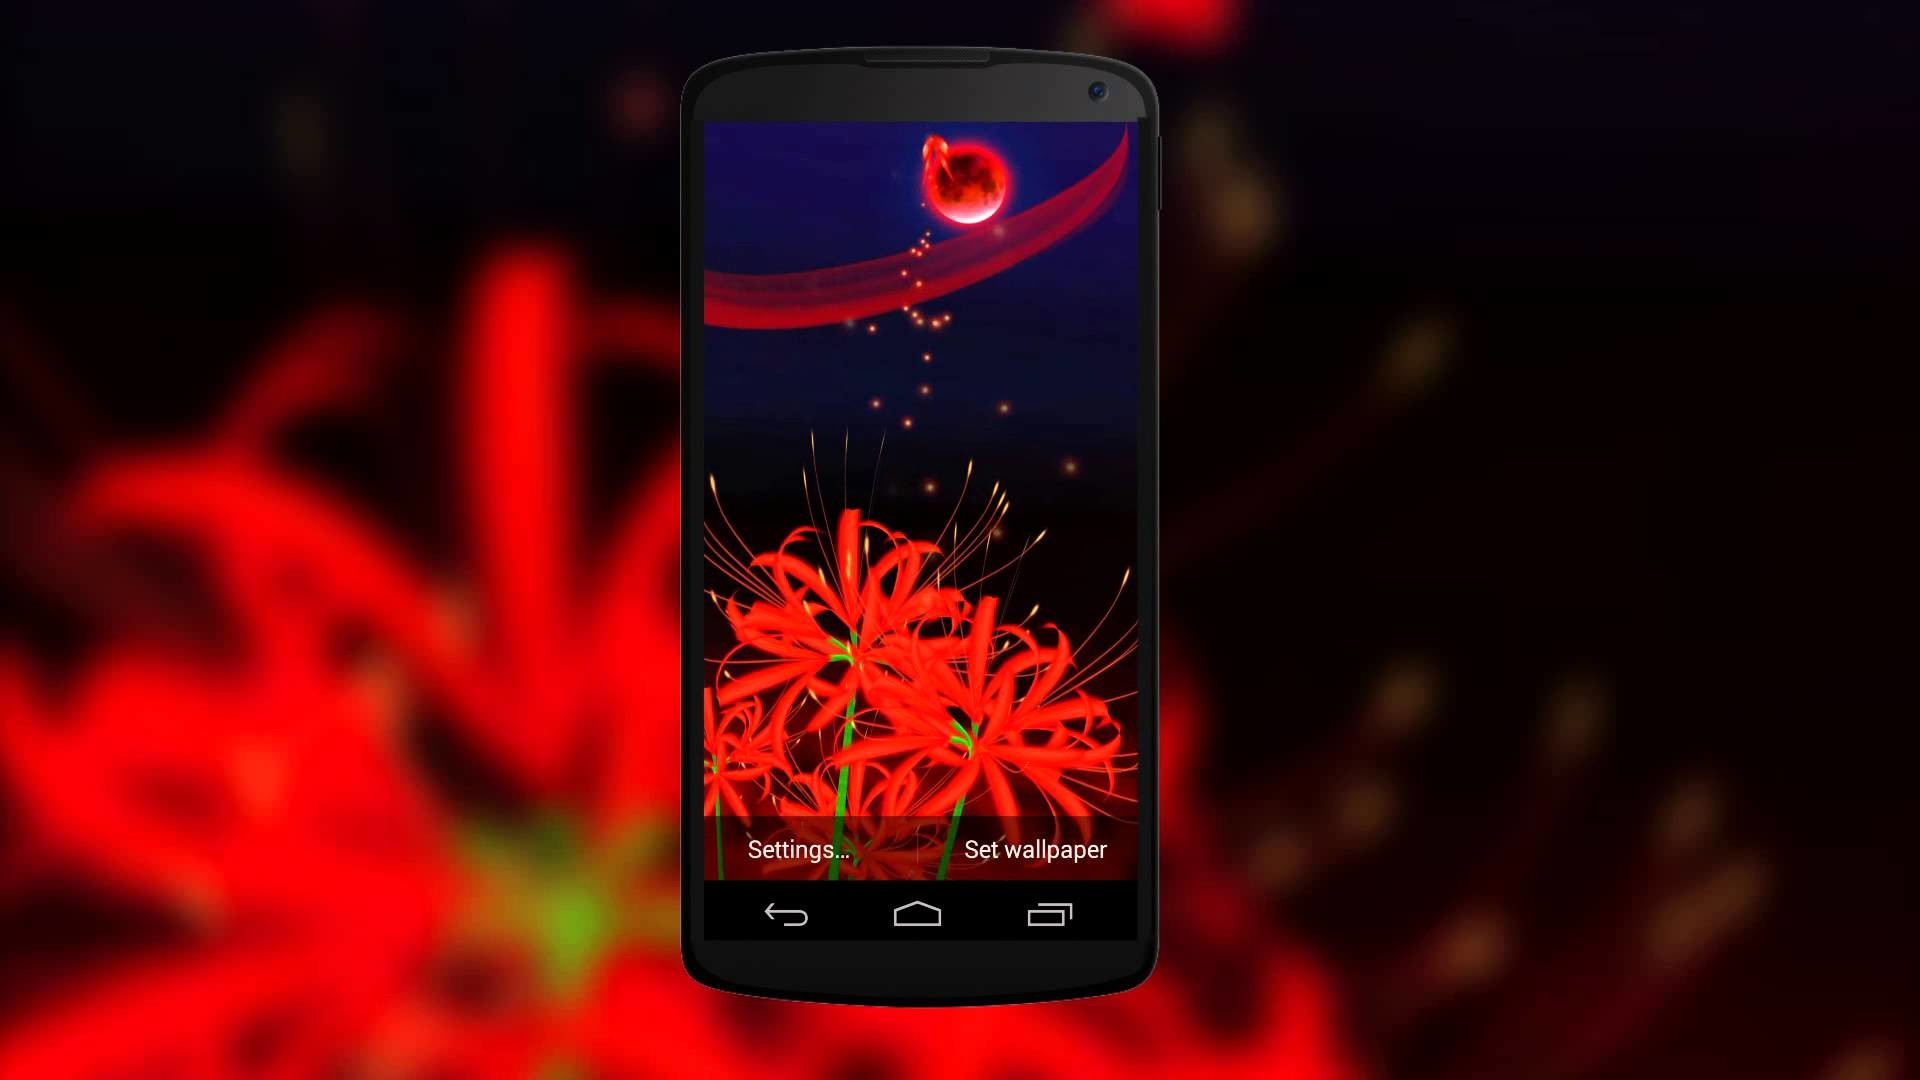 Res: 1920x1080, Gorgeous 3D Live Wallpaper of Red Butterflies & Red Spider Lily Flowers